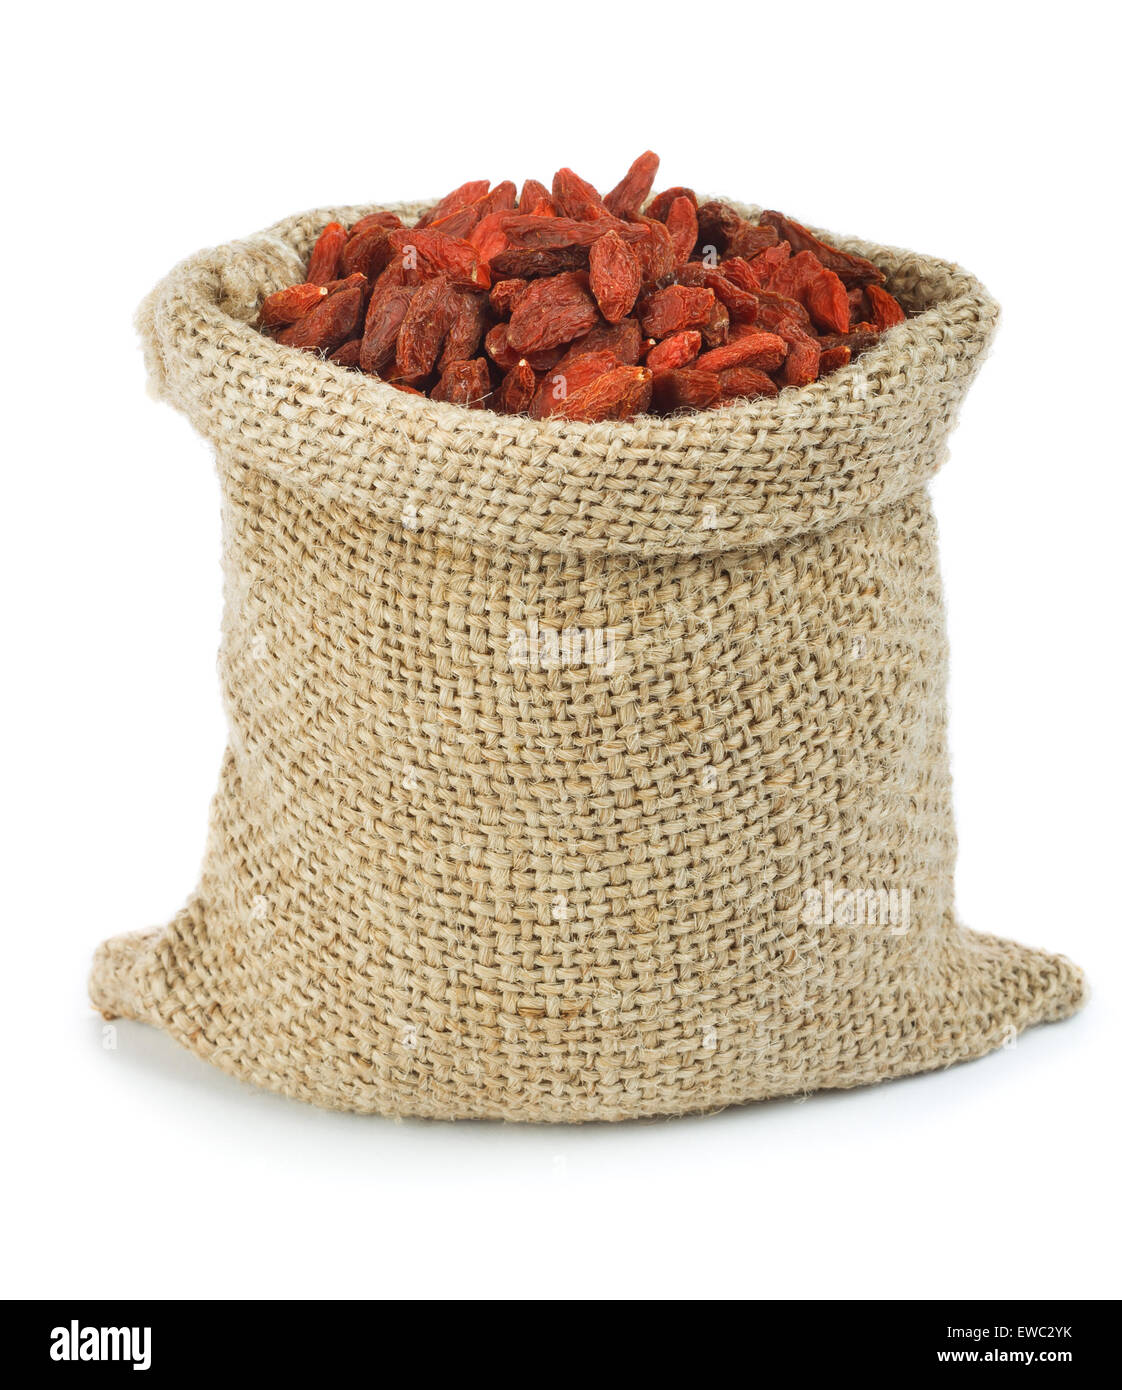 Dried goji berries in burlap bag. - Stock Image